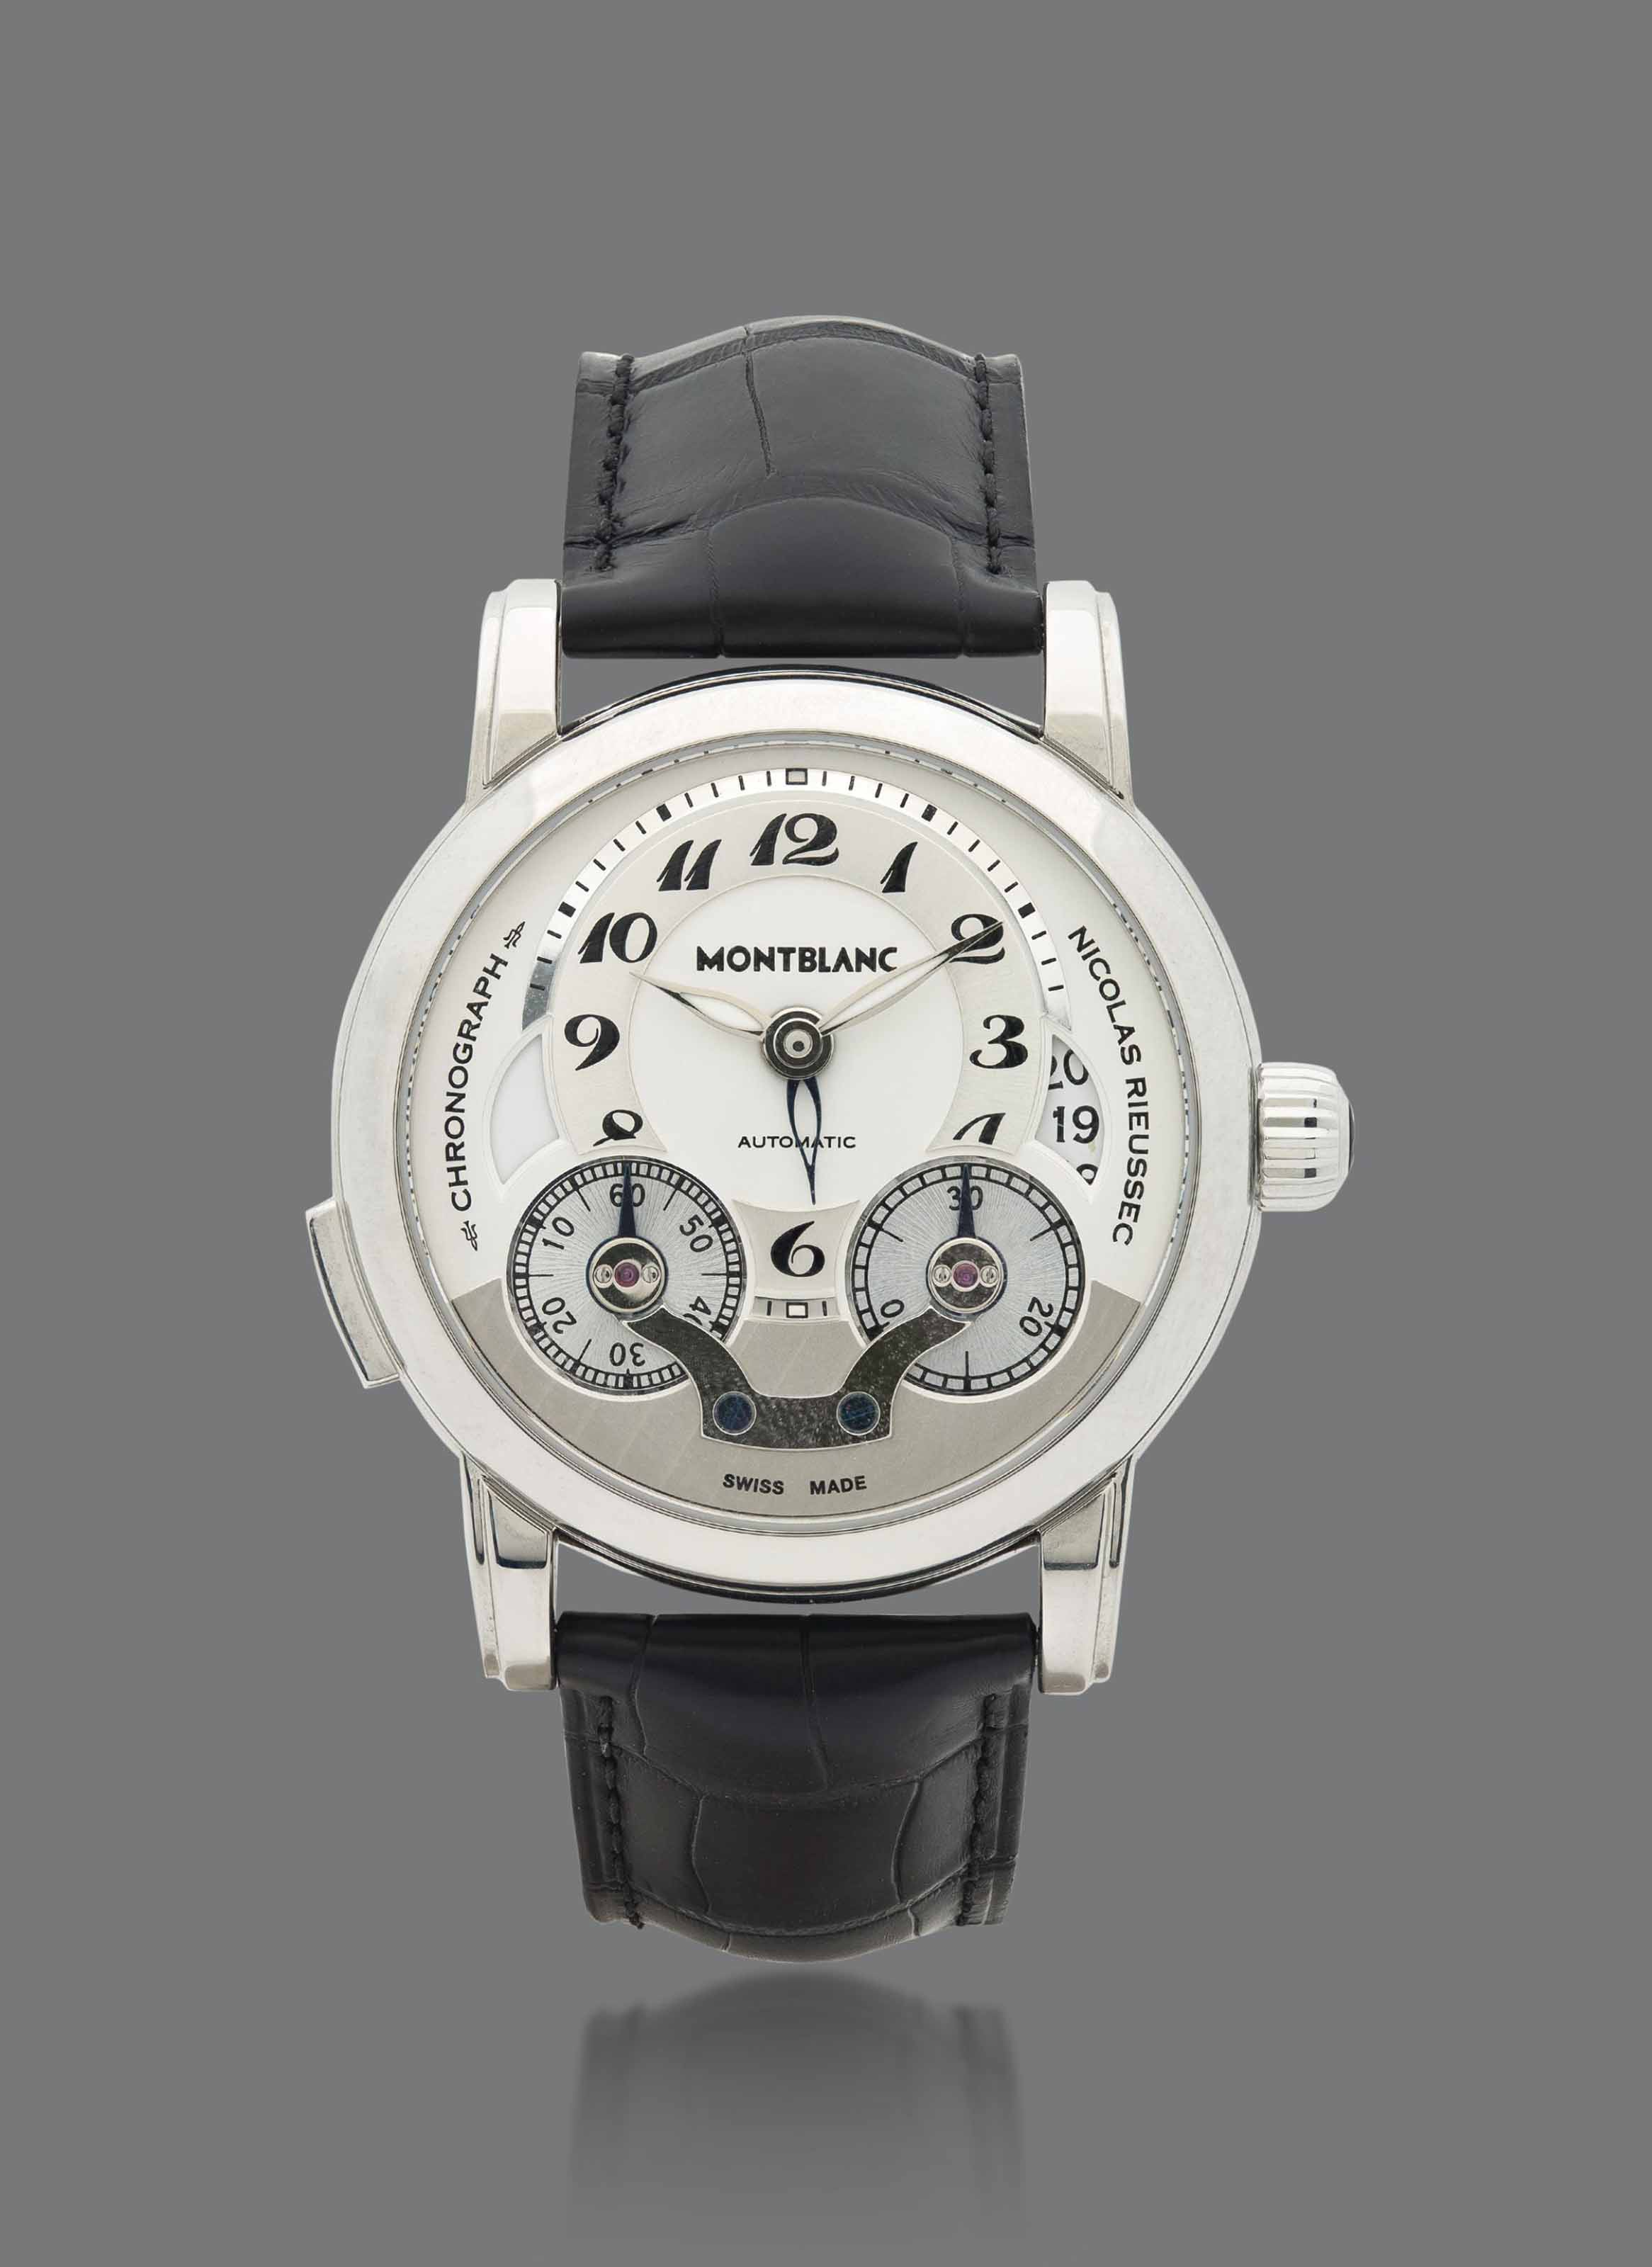 MONTBLANC. A FINE STAINLESS STEEL AUTOMATIC DUAL TIME SINGLE BUTTON CHRONOGRAPH WRISTWATCH WITH DATE AND TURNING DISC REGISTERS